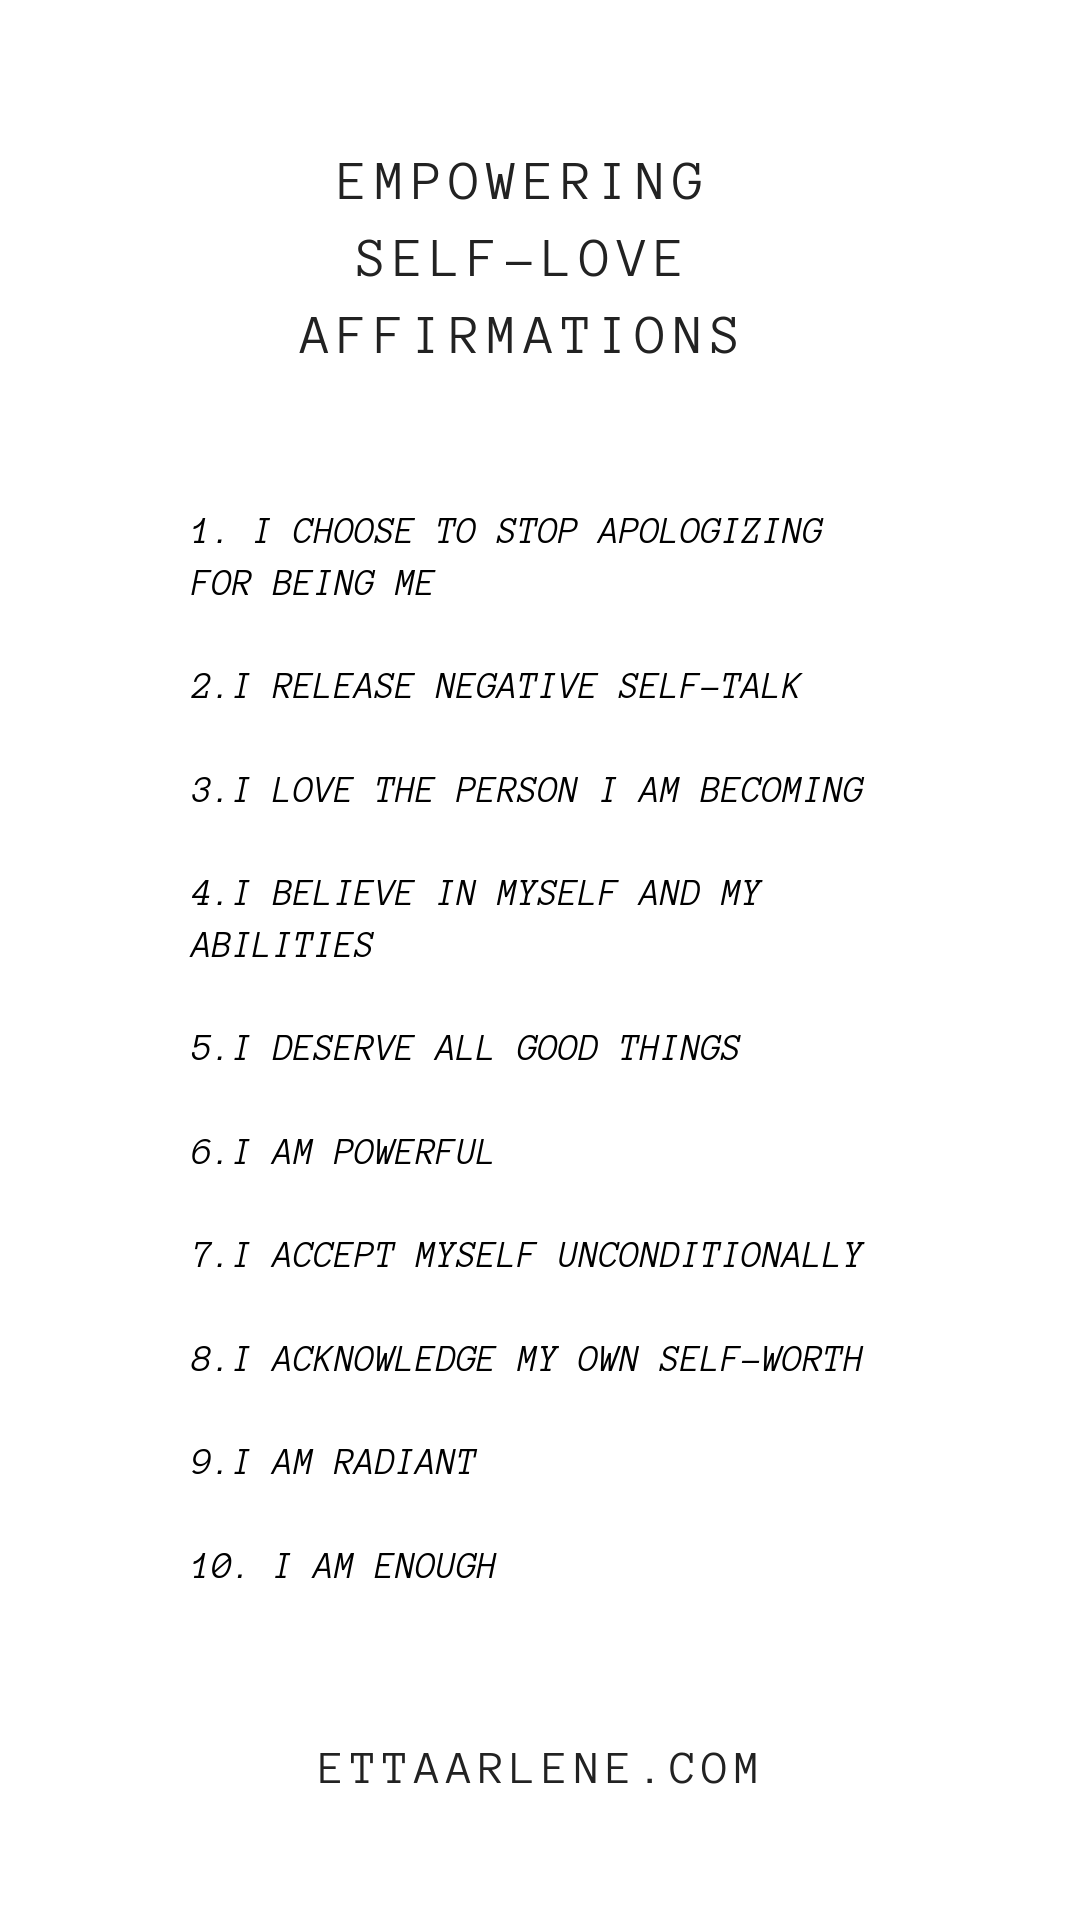 Empowering Self Love Affirmations